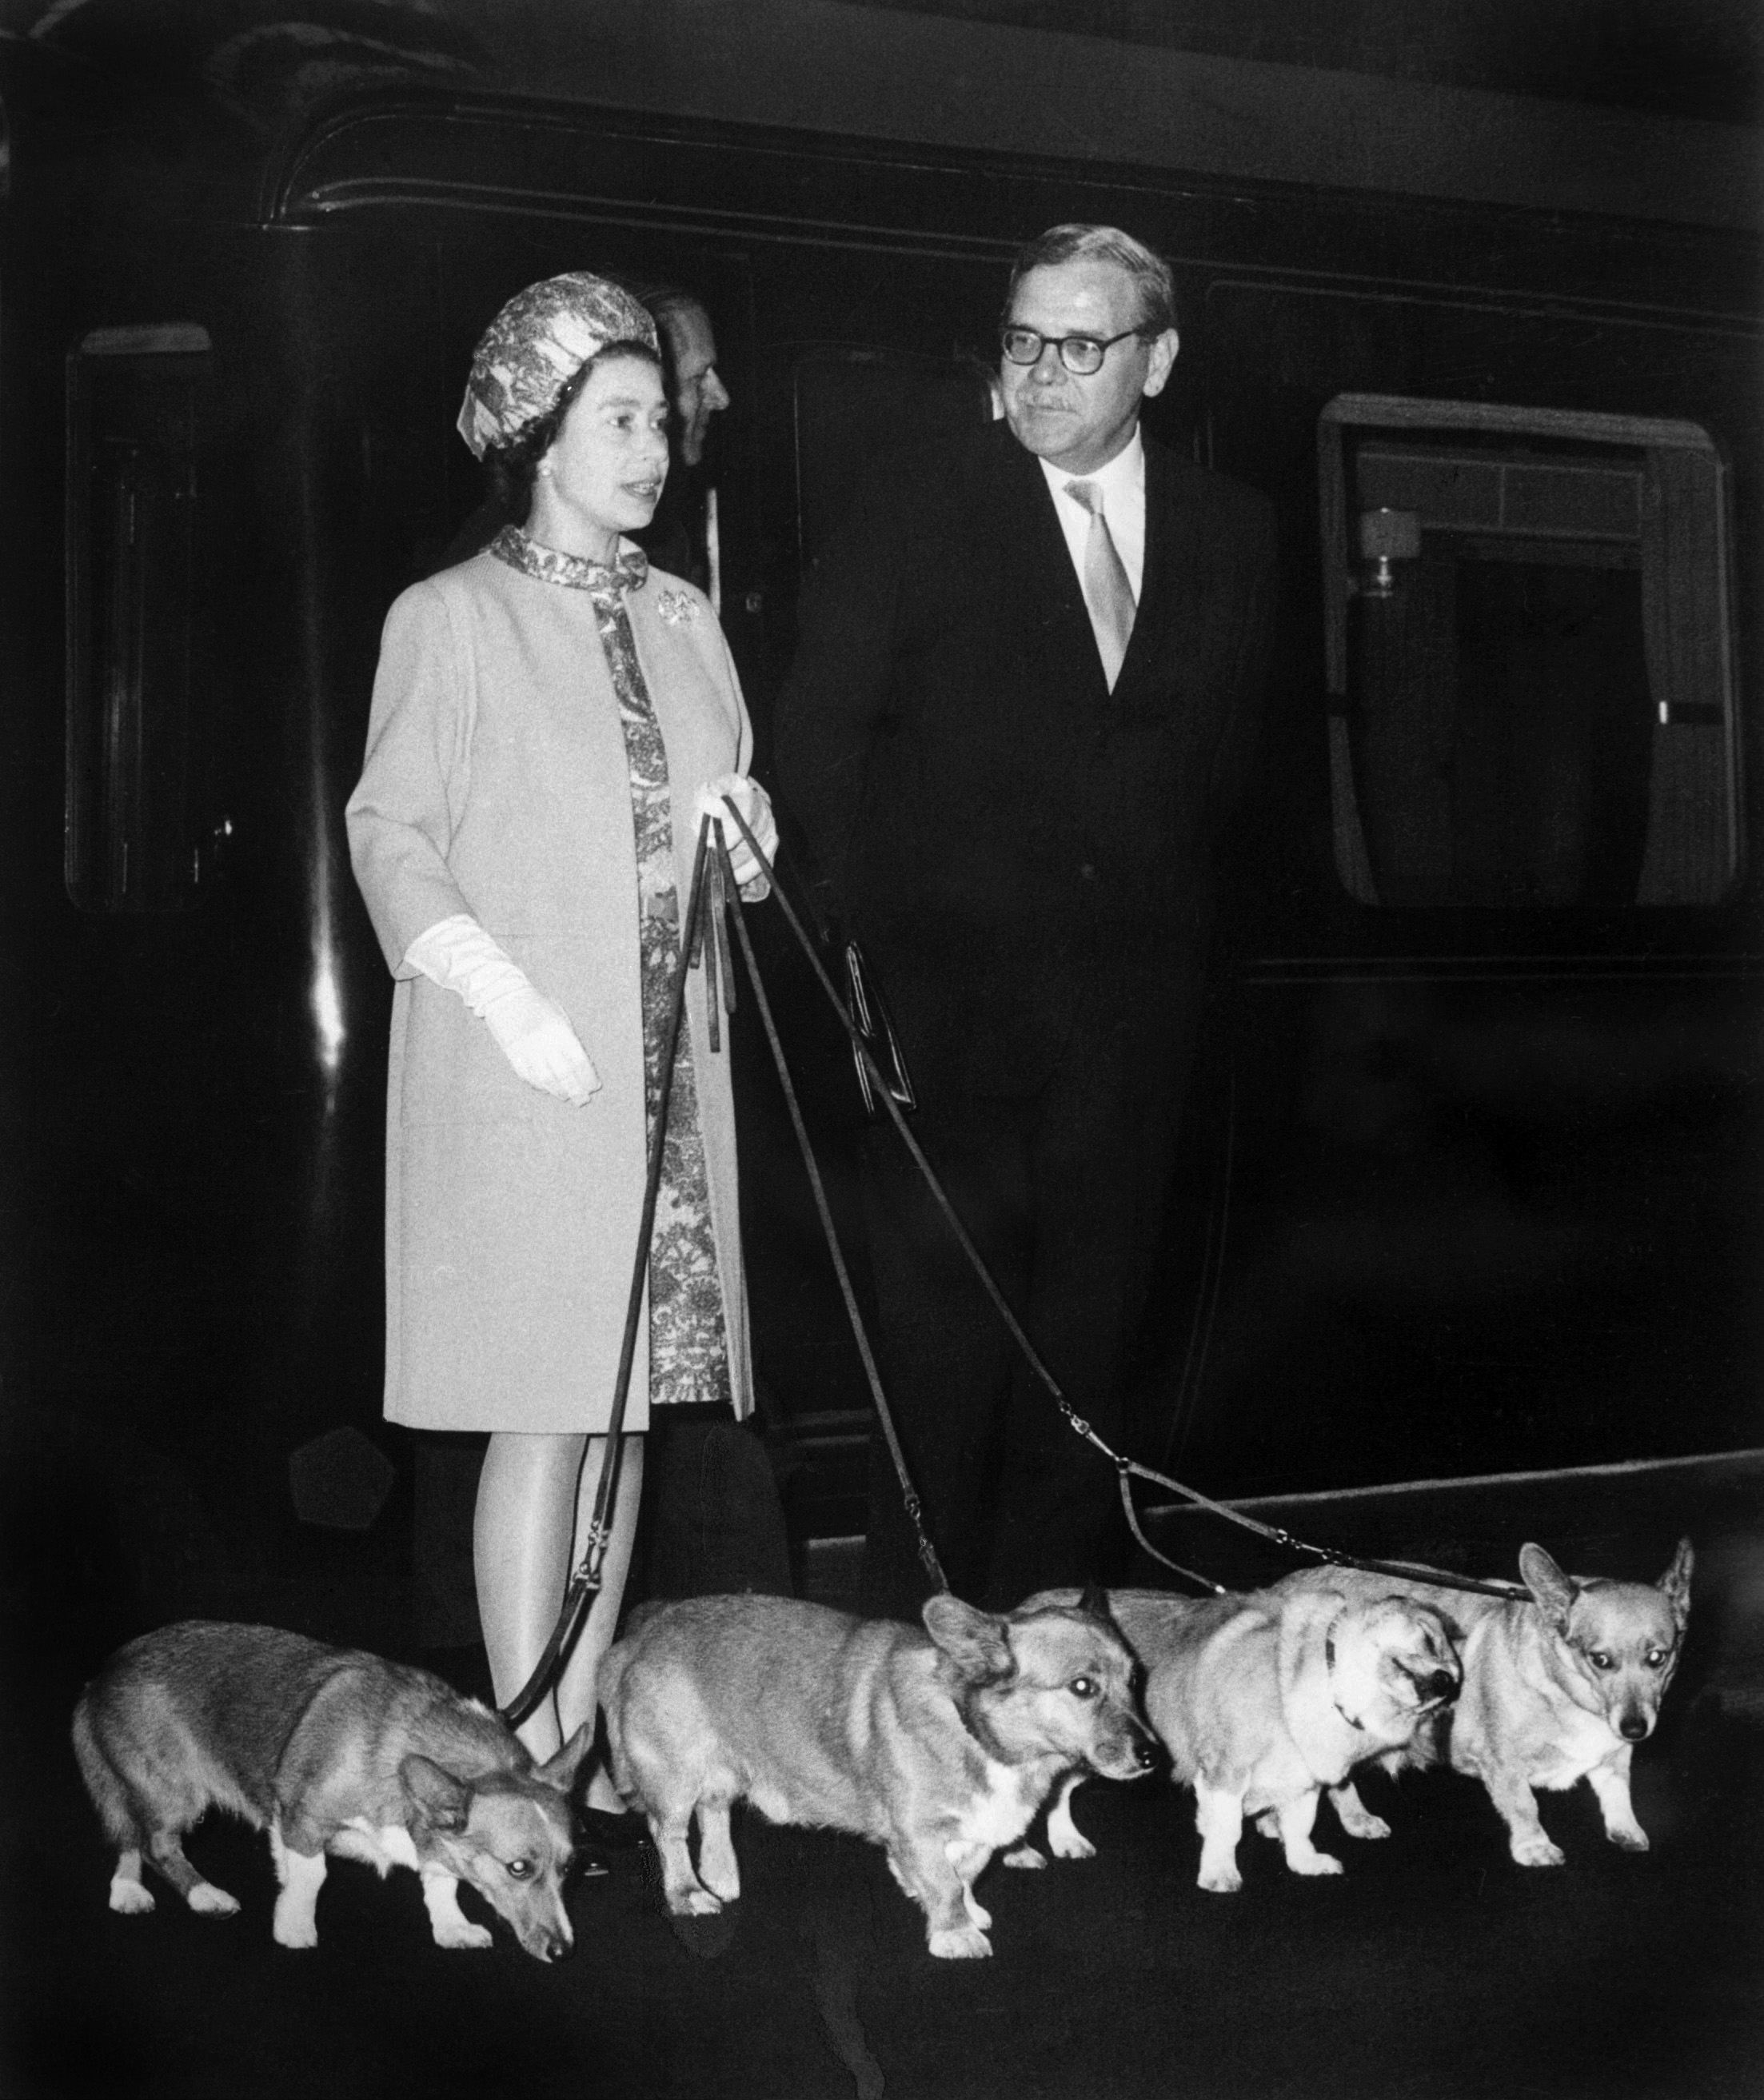 Queen Elizabeth II arrives at King's Cross railway with her corgis